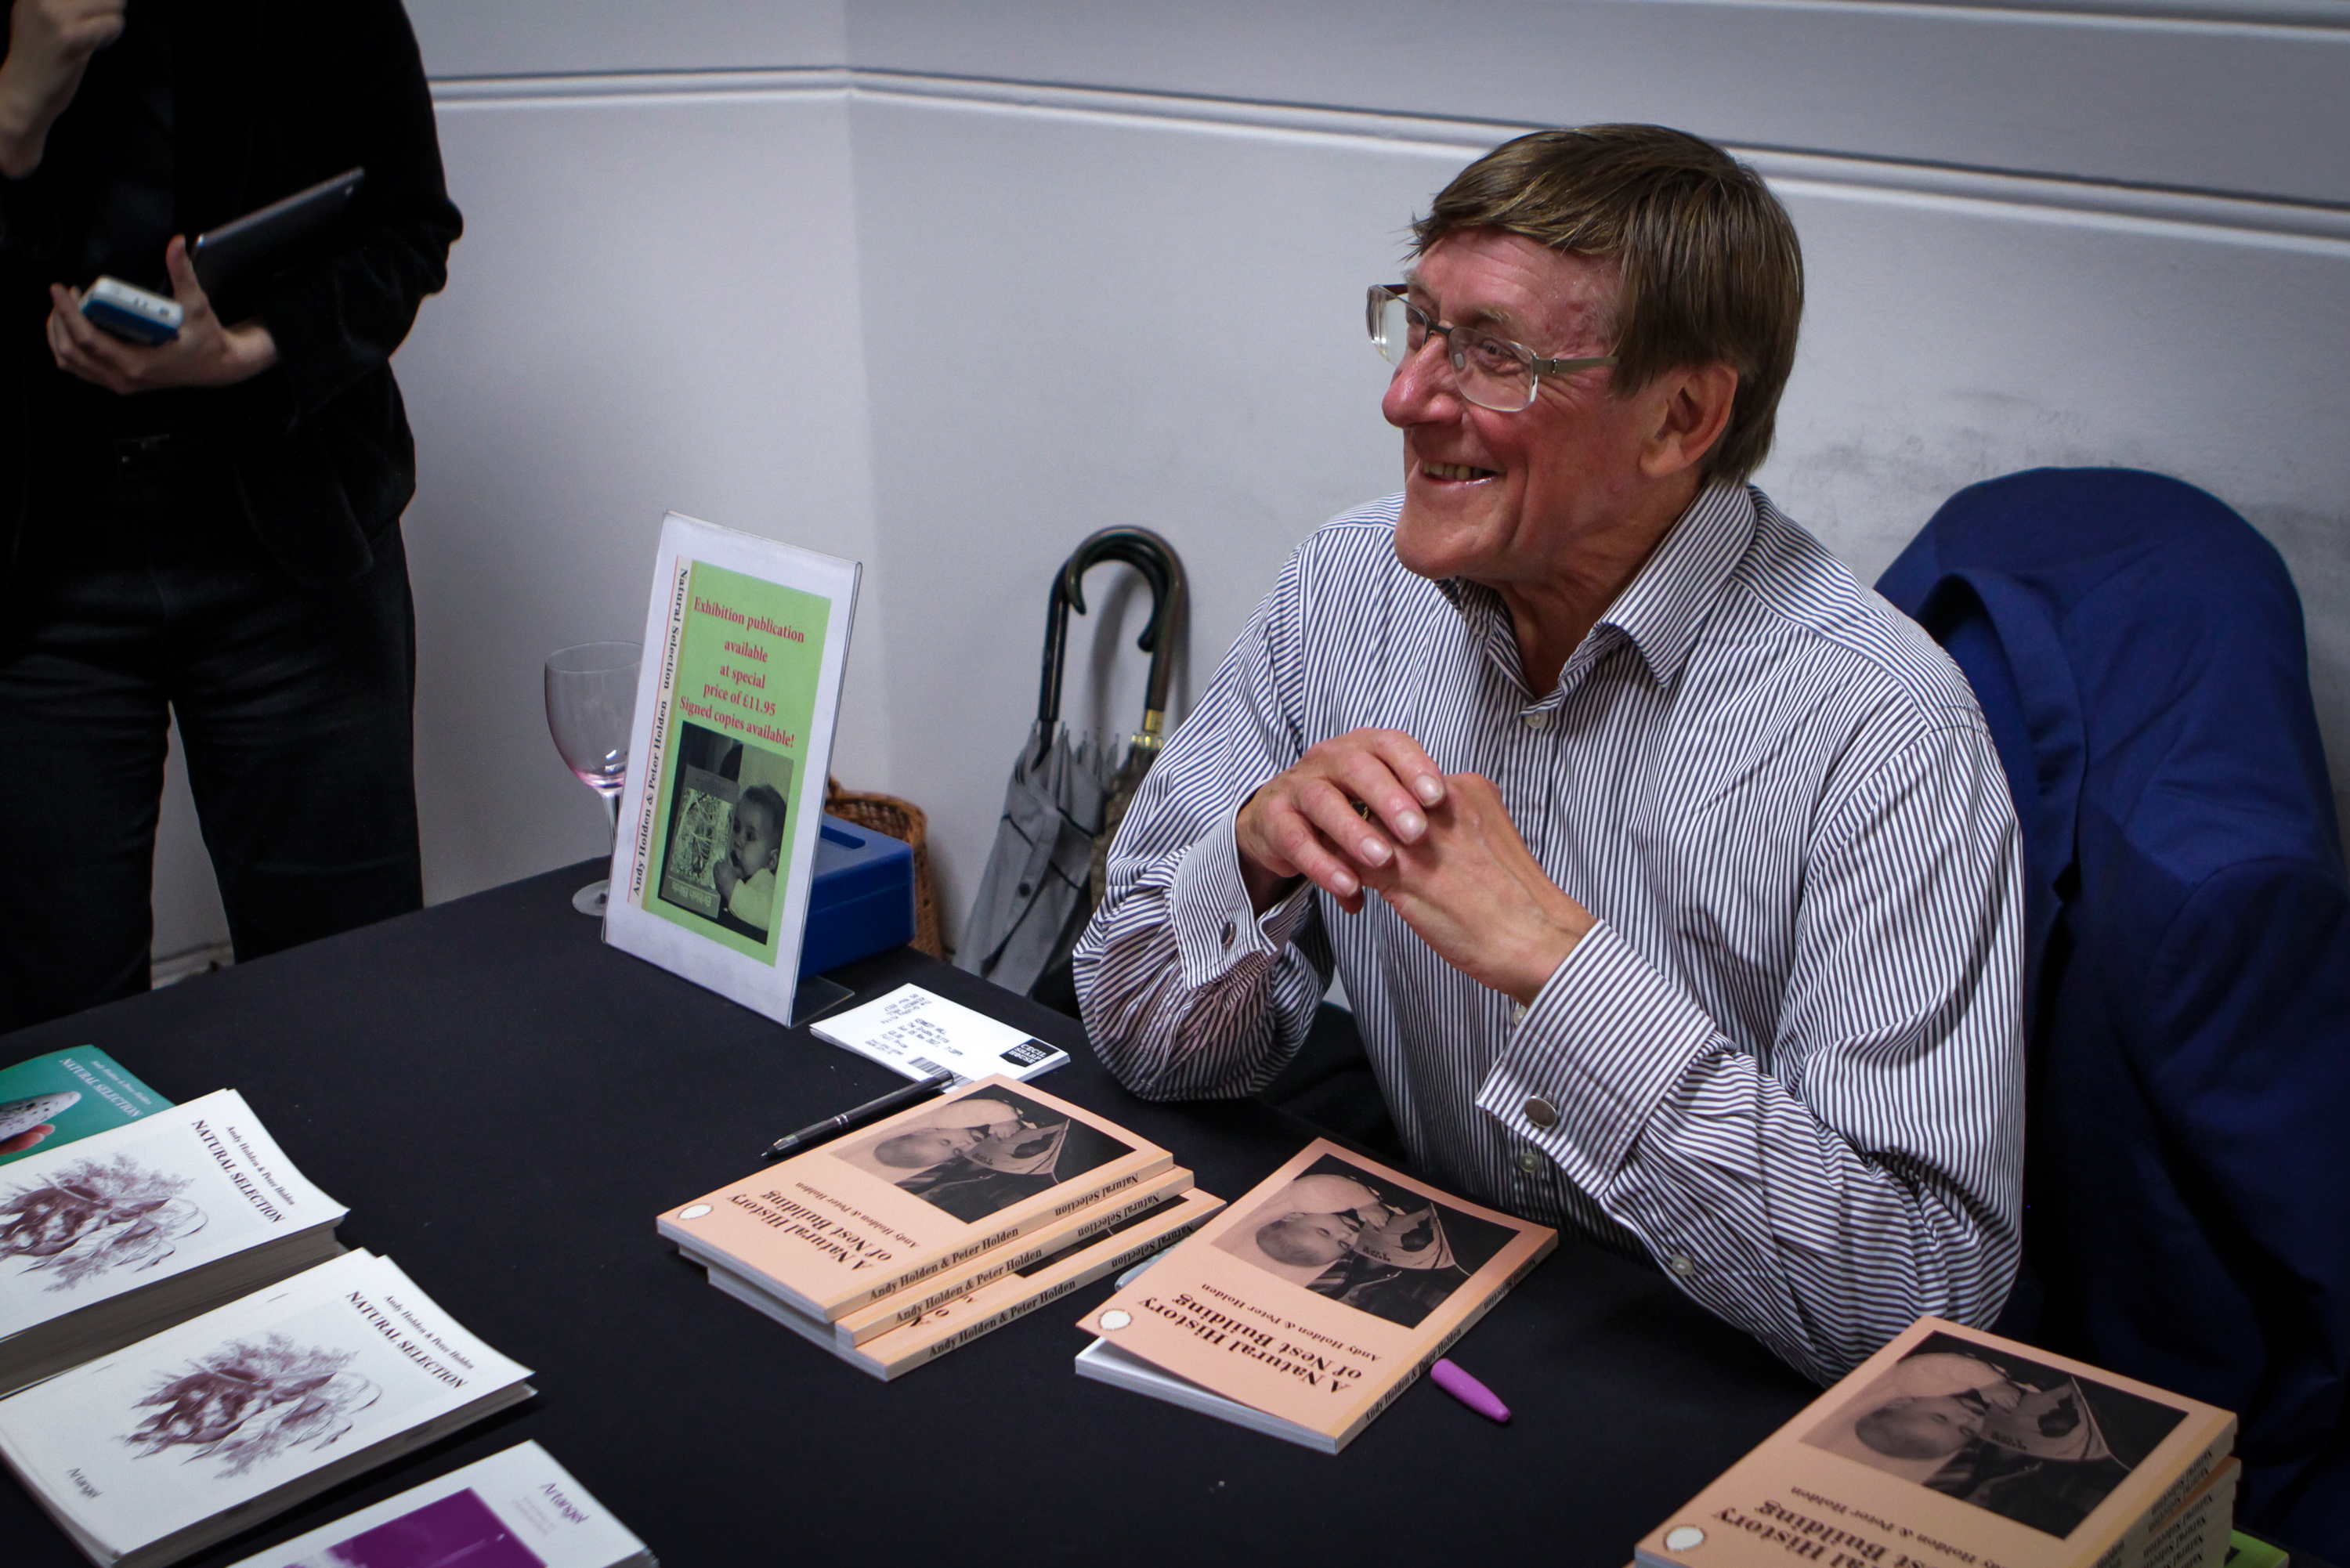 Peter Holden signing copies of A Natural History of Nest Building by Andy Holden and Peter Holden